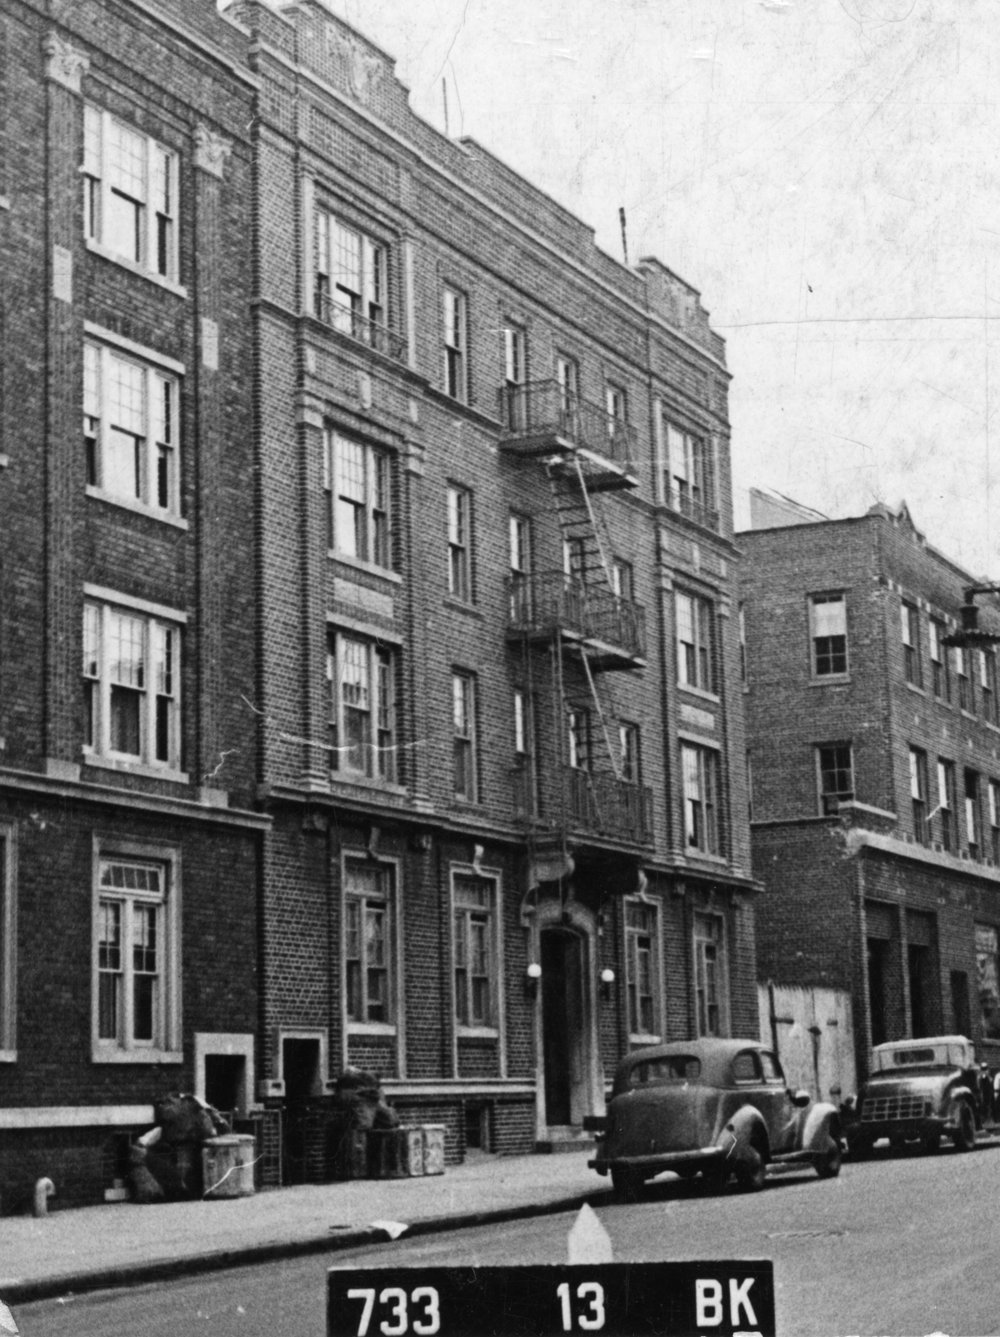 816 43rd Street, Brooklyn, NY. 1939-1941.  NYC Municipal Archives.